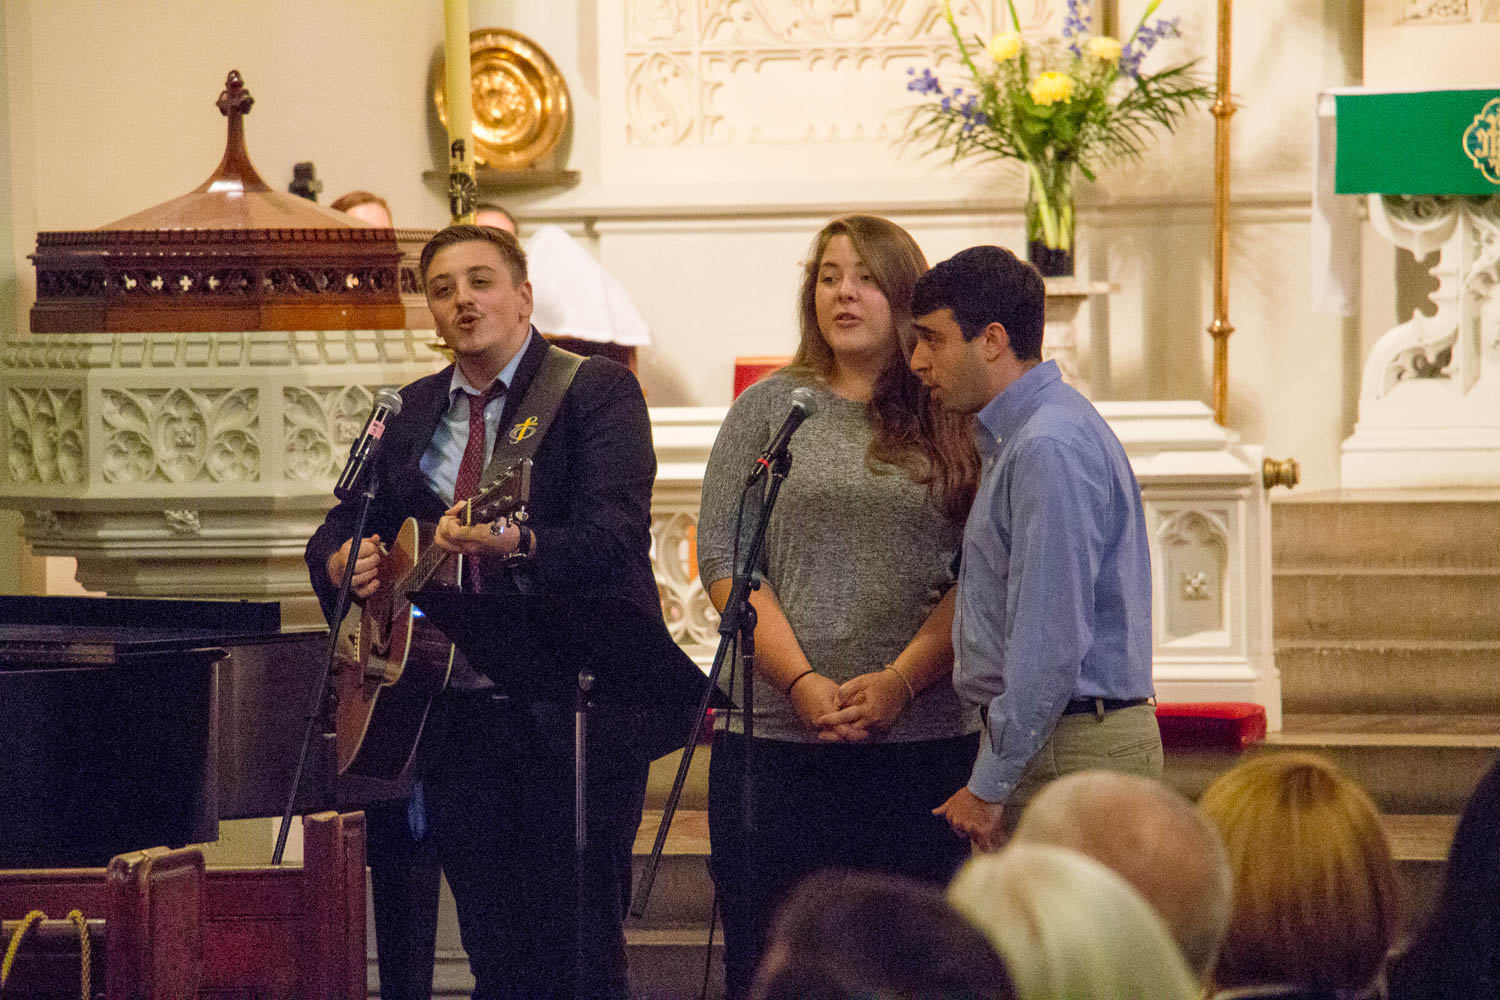 The service included wonderful special music, by this trio from Pinecrest (a youth leadership ministry Pastor Danielle also leads), and the Advent Chorale.